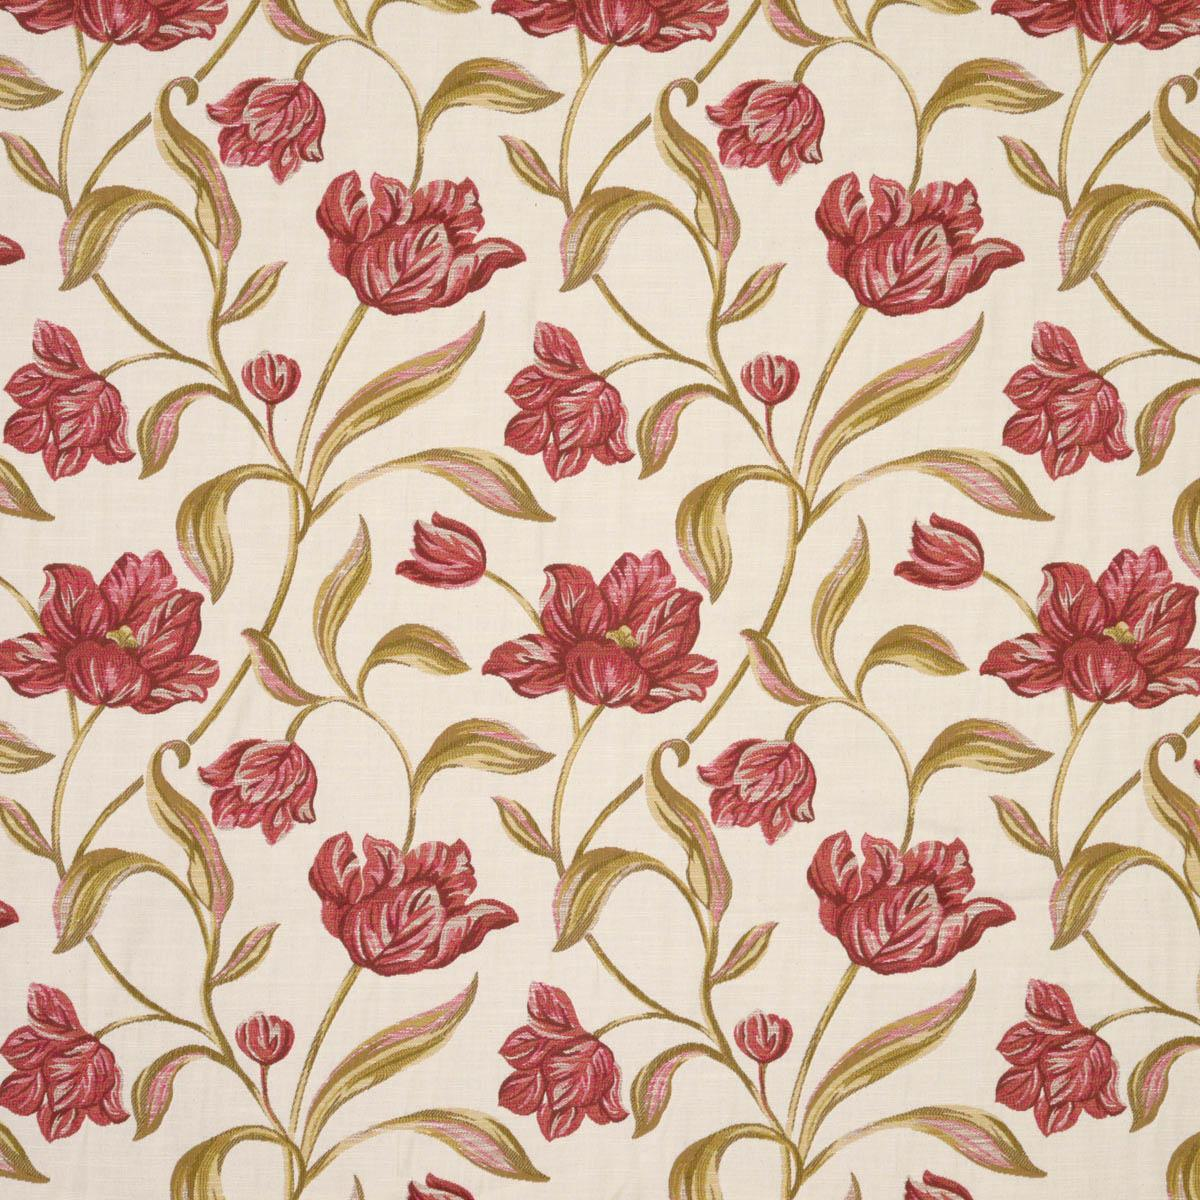 Stockists of Rouge Gabriella Curtain Fabric